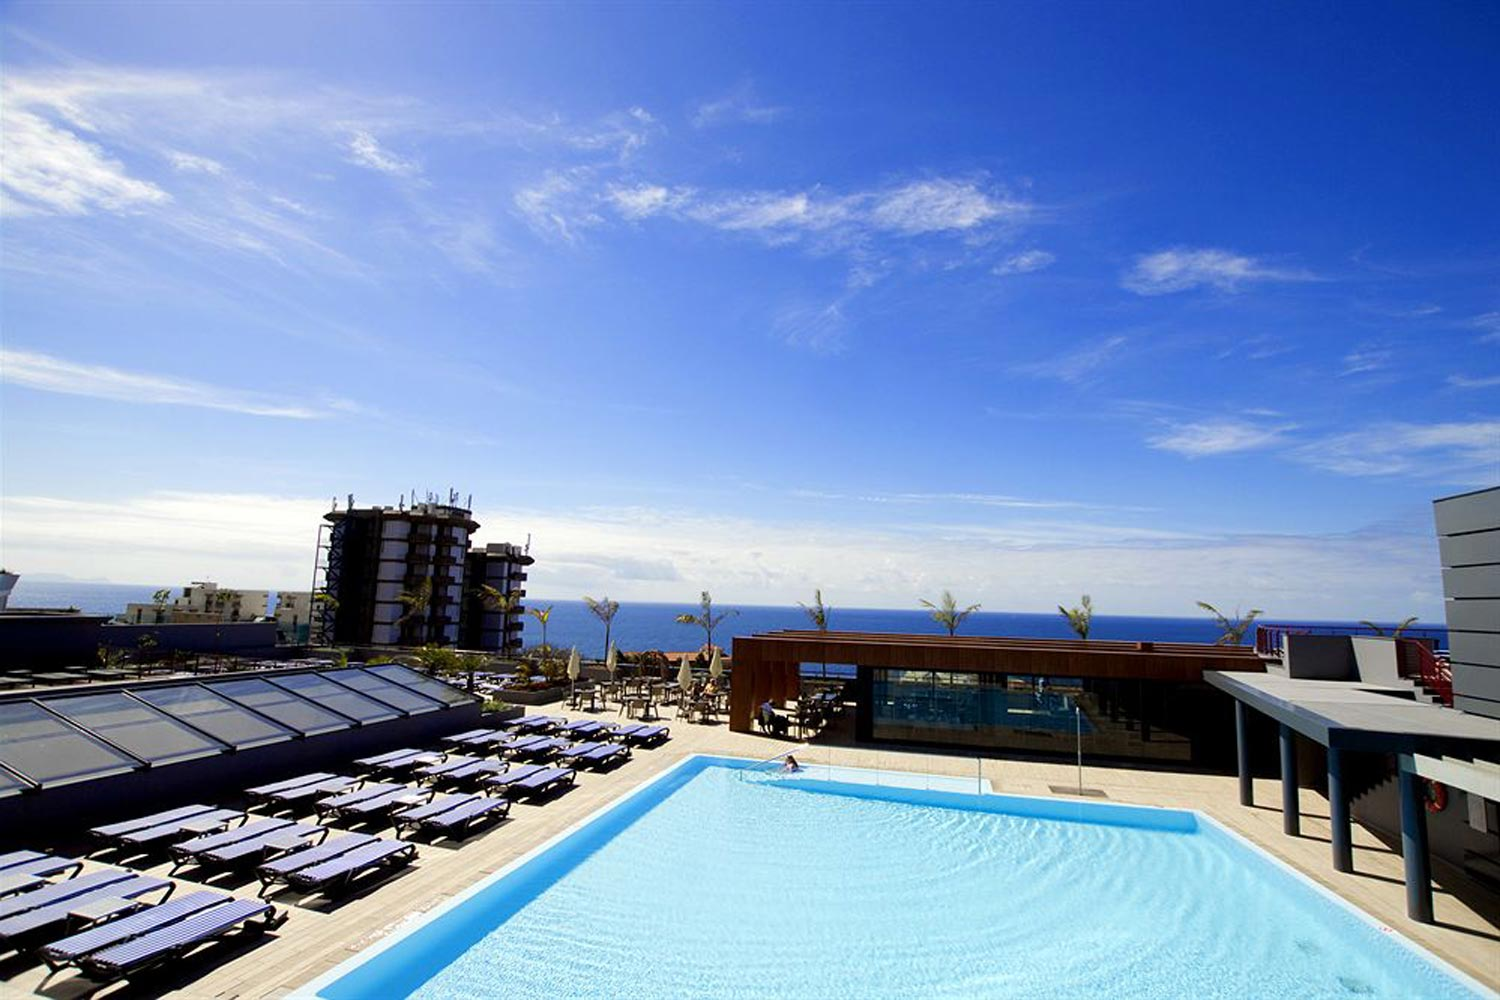 Four-star Four Views Monumental Lido, Madeira-from £329 pp